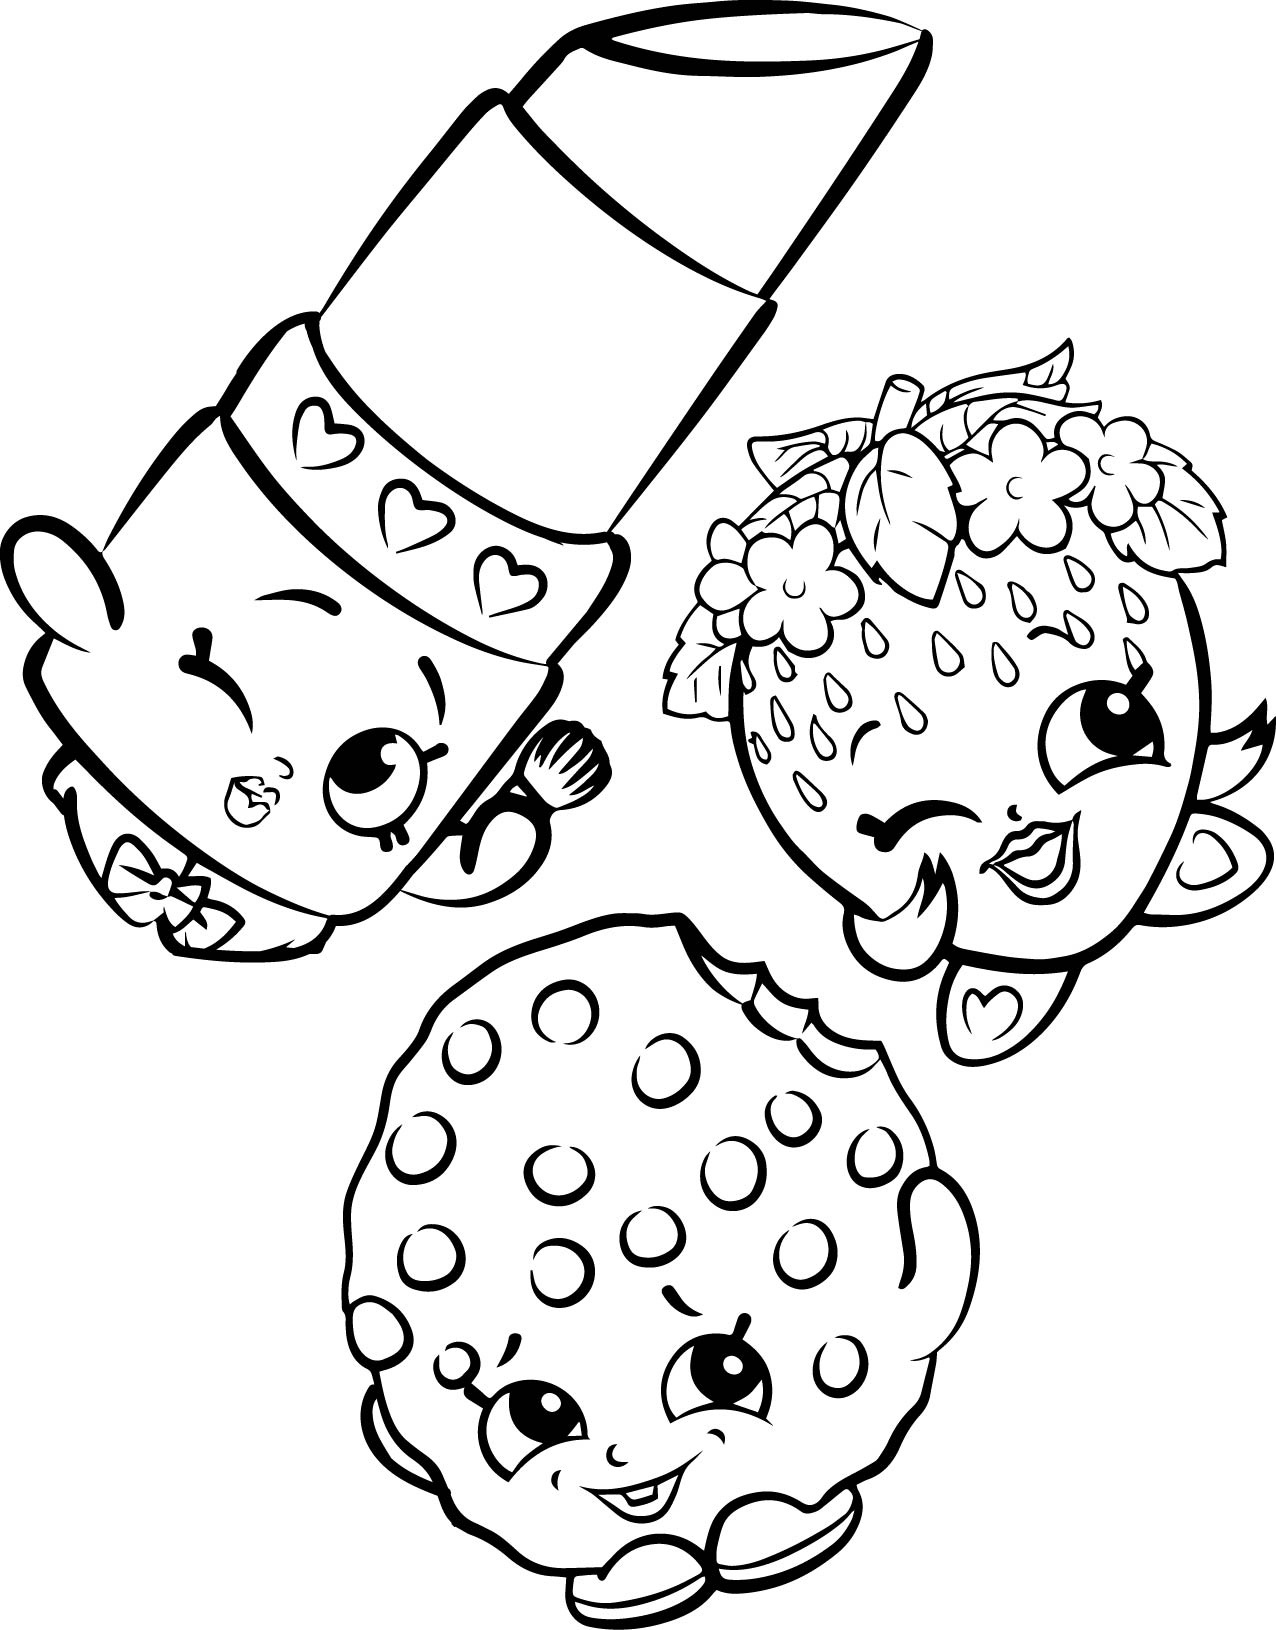 Shopkins Coloring Pages - Best Coloring Pages For Kids - Shopkins Coloring Pages Printable Free